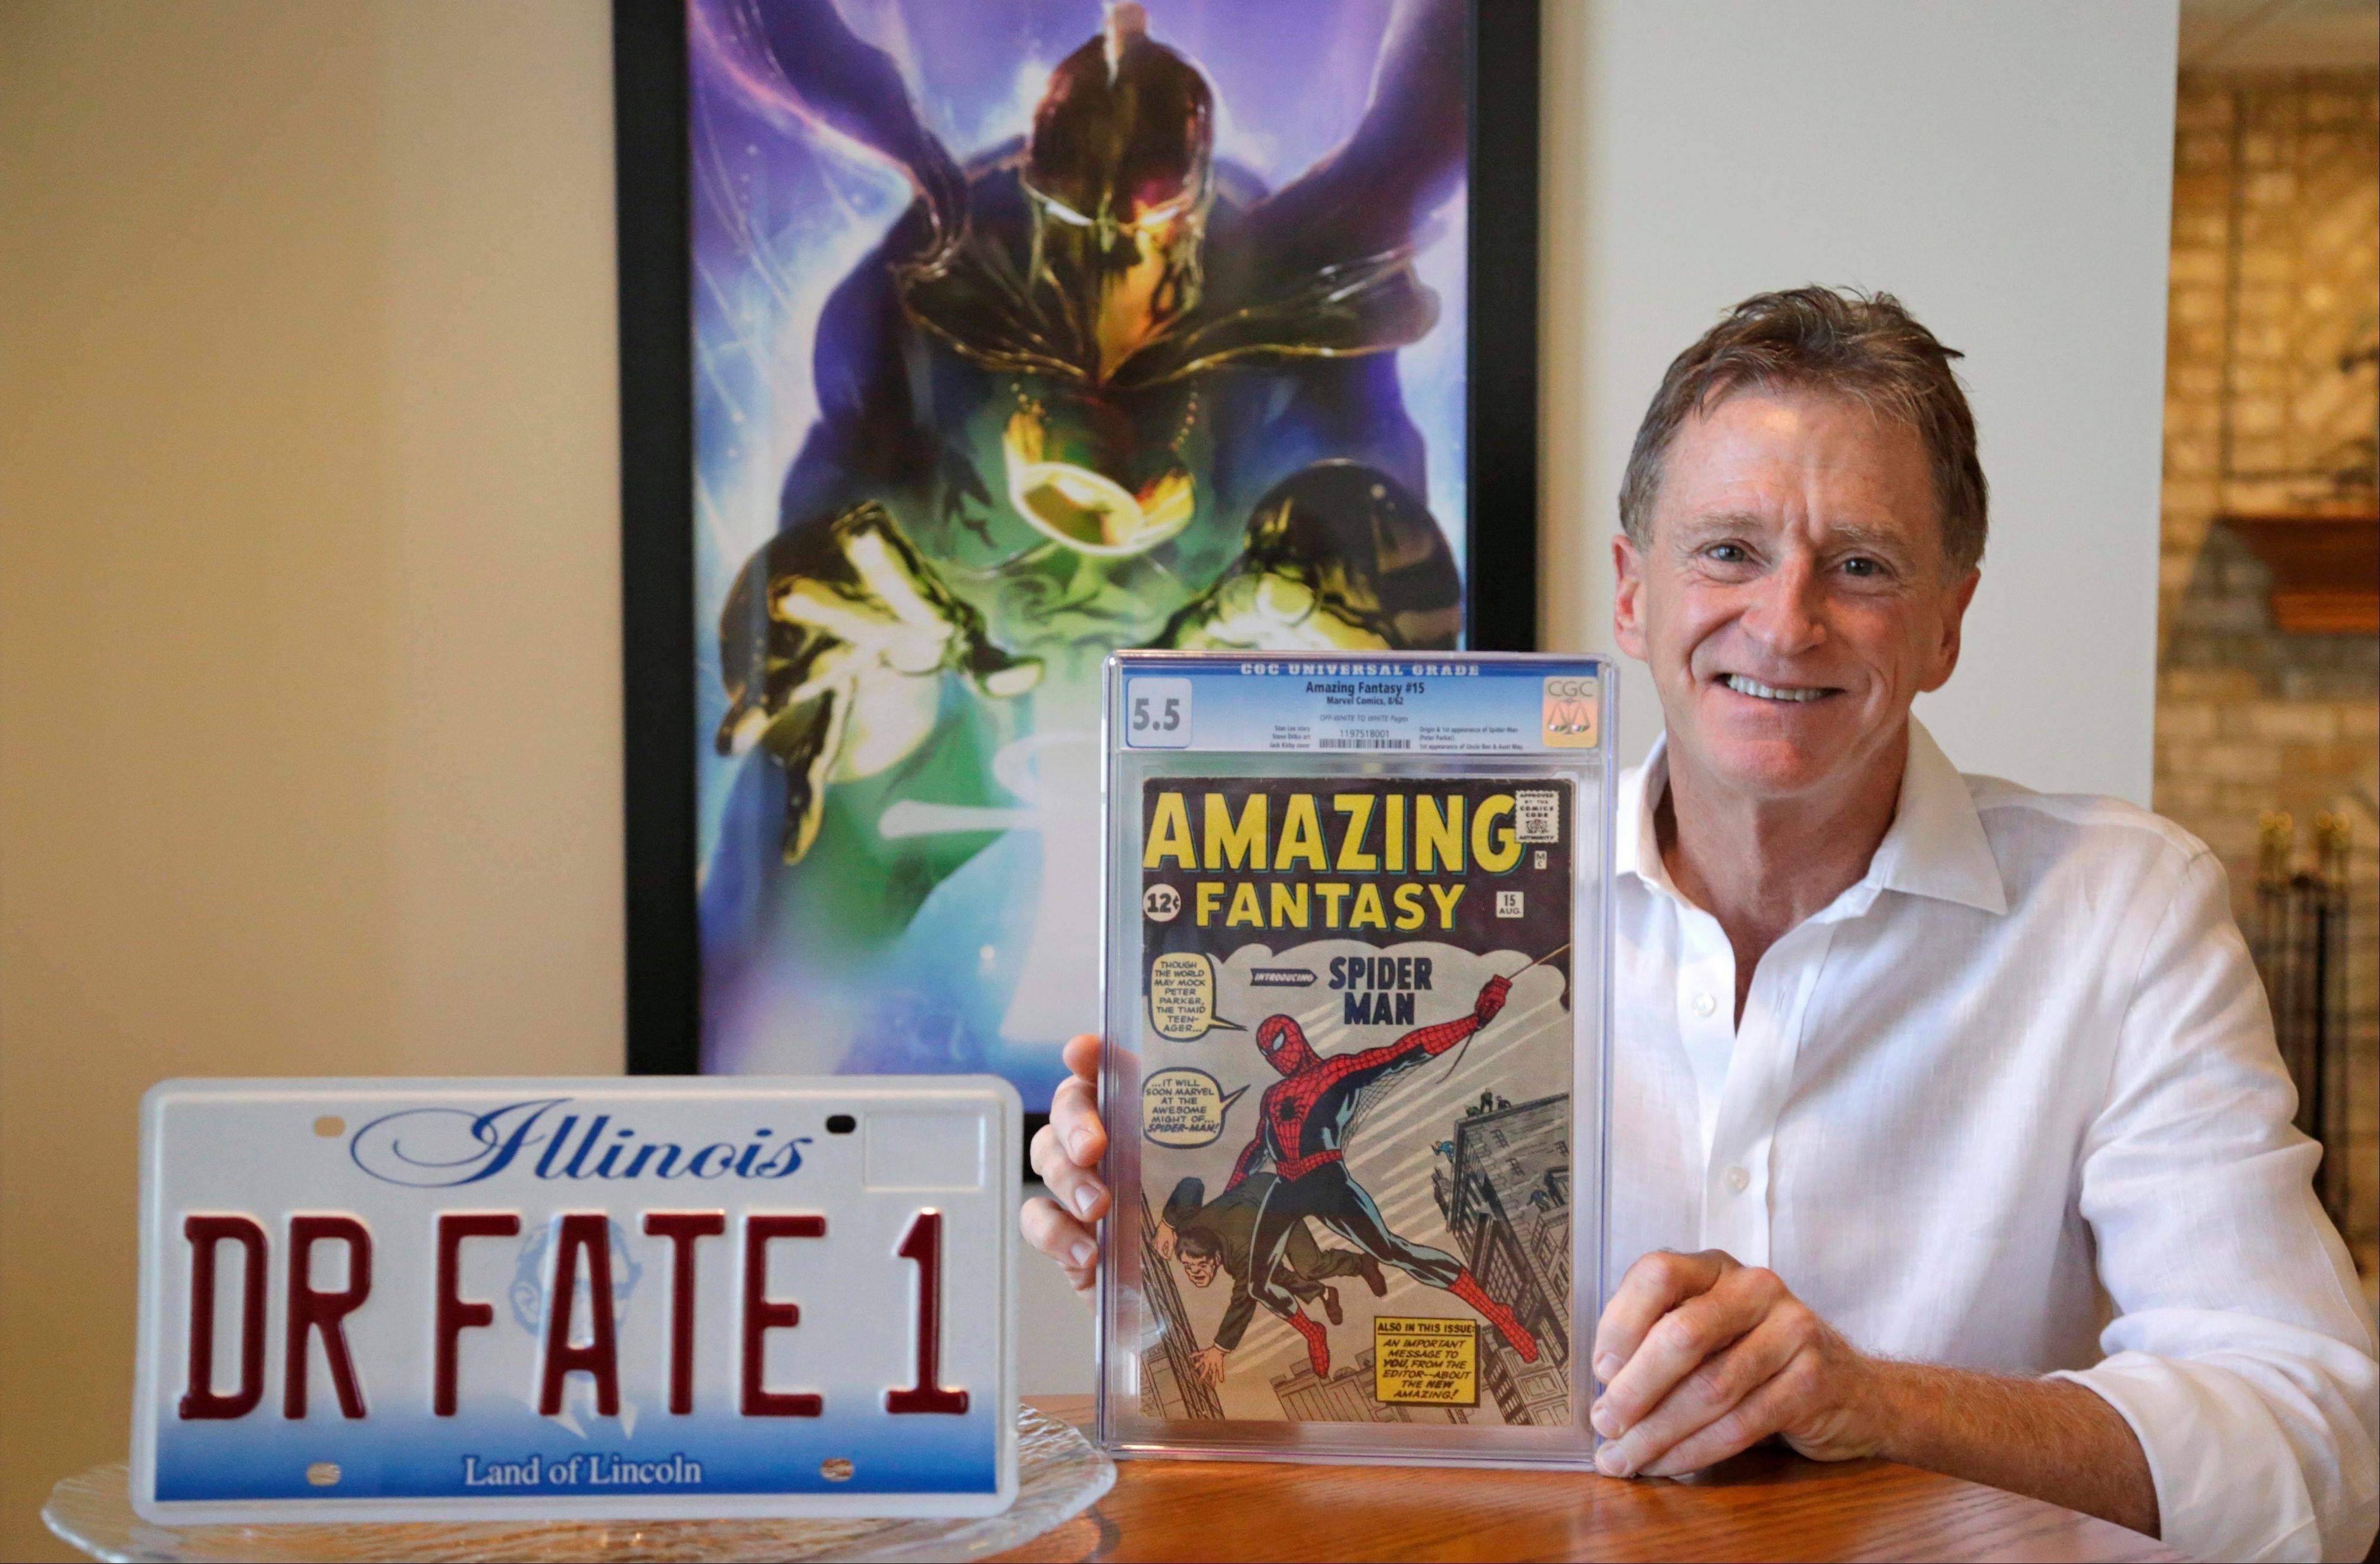 Facing tough foe, Kildeer man turns to comics collection